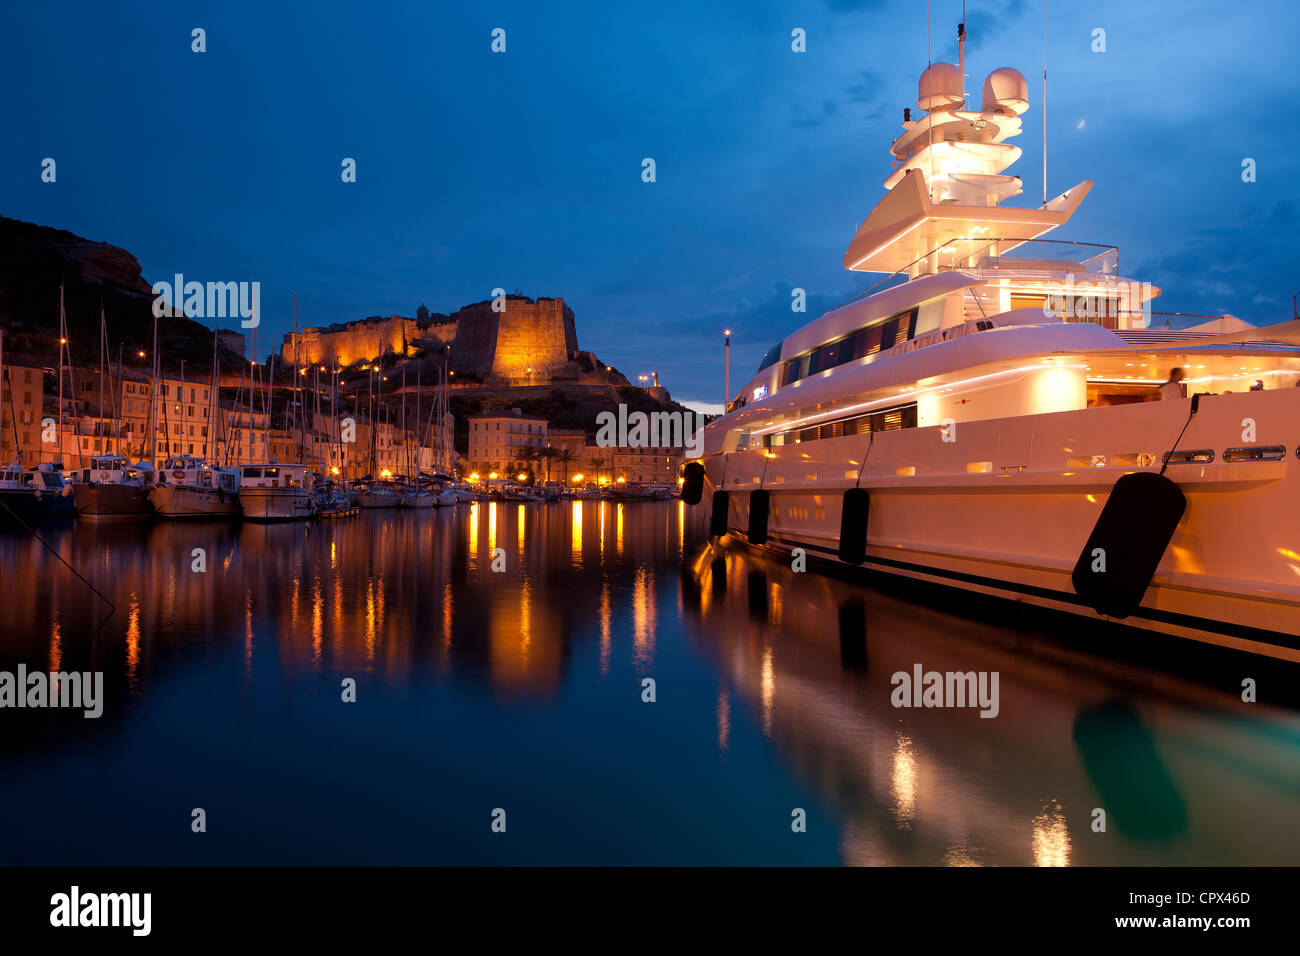 private yacht in the harbour at Bonifacio, Corsica, France - Stock Image